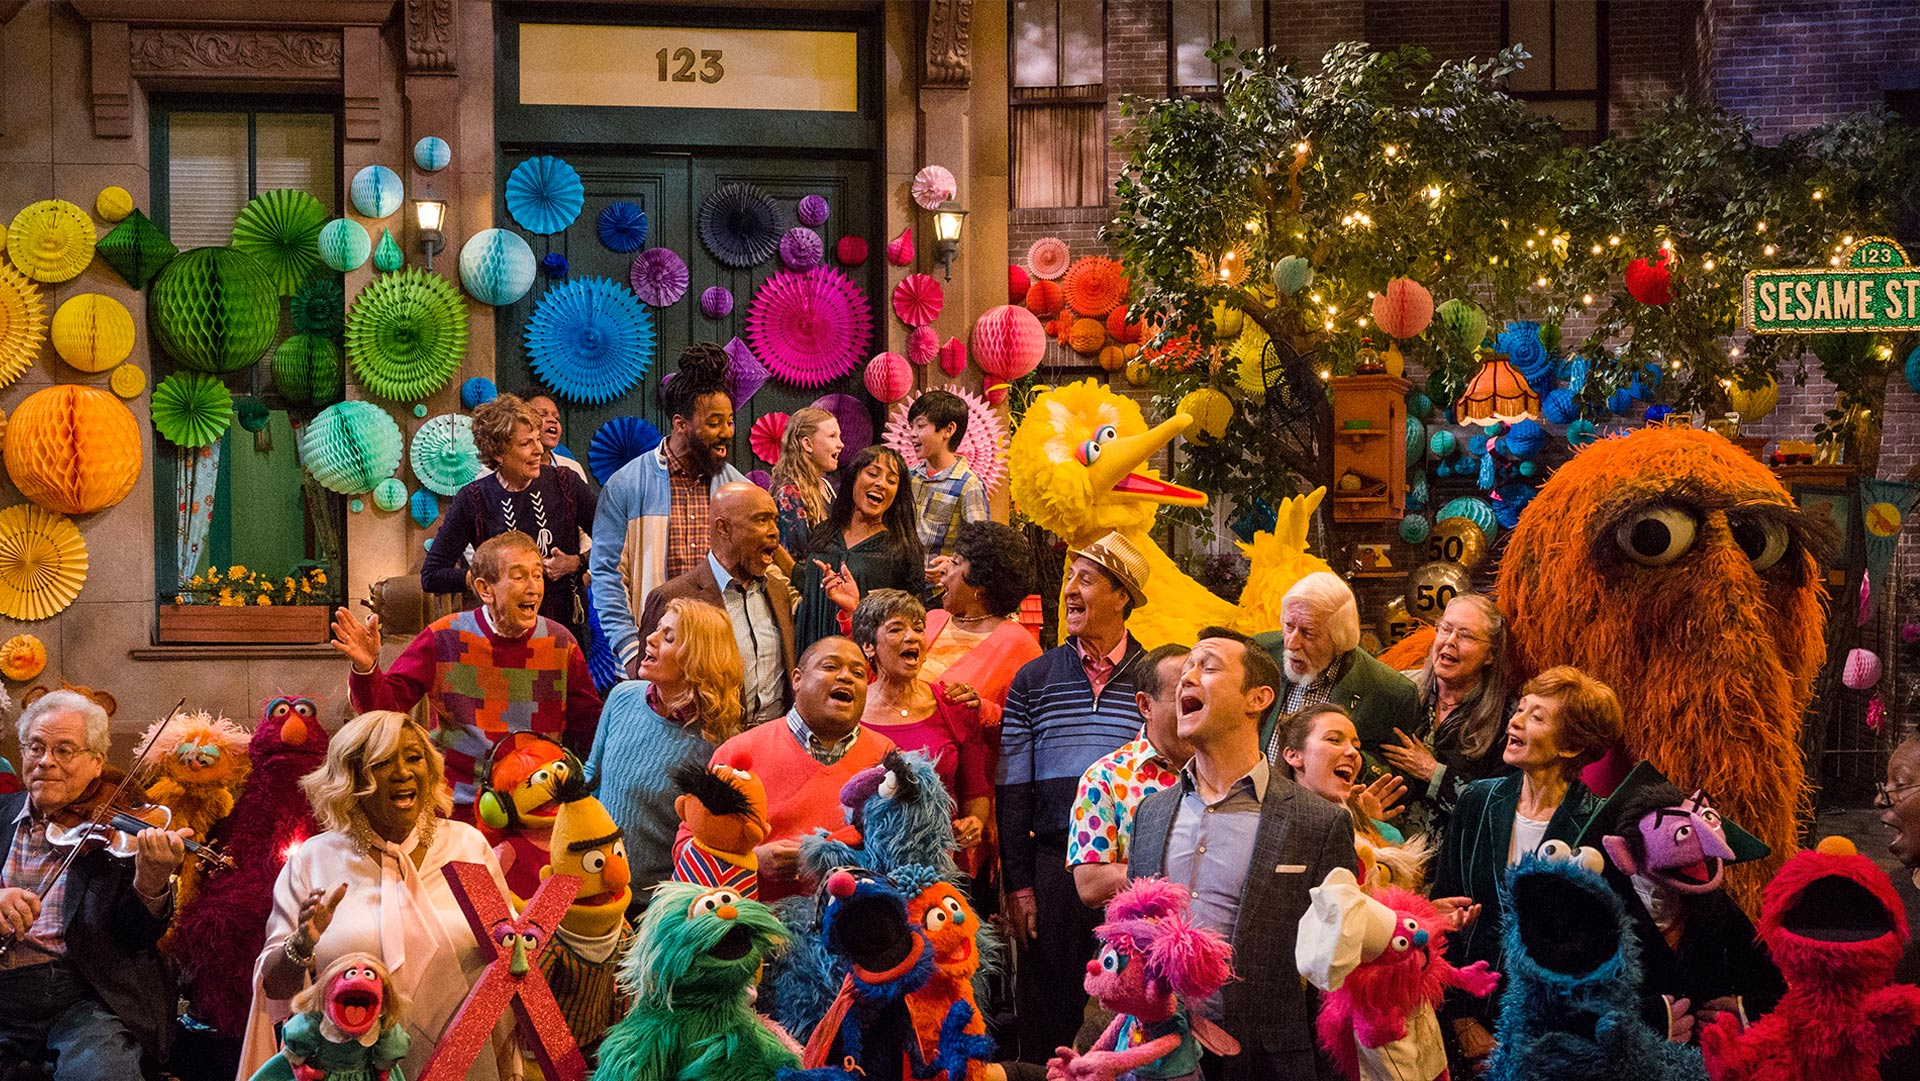 SESAME STREET'S 50TH ANNIVERSARY CELEBRATION